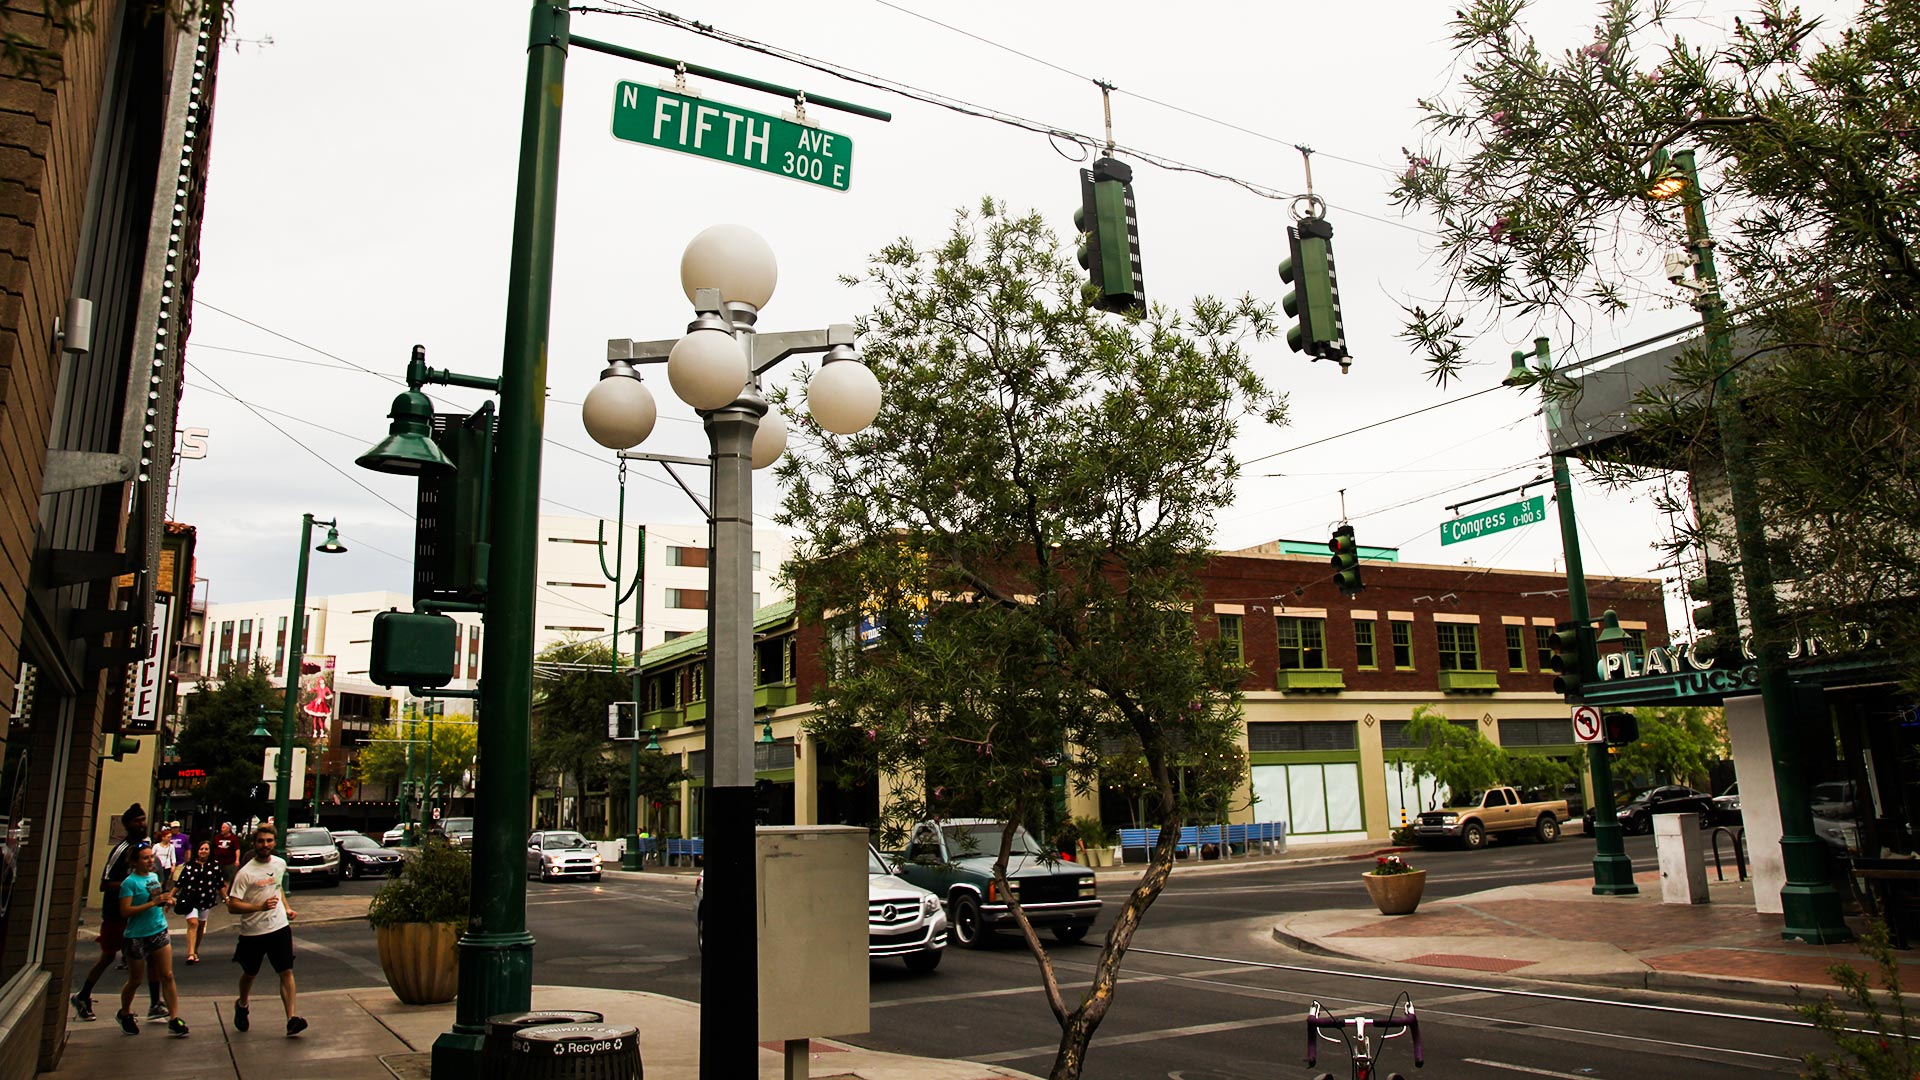 The intersection of Fifth Avenue and Congress Street in downtown Tucson, 2017.